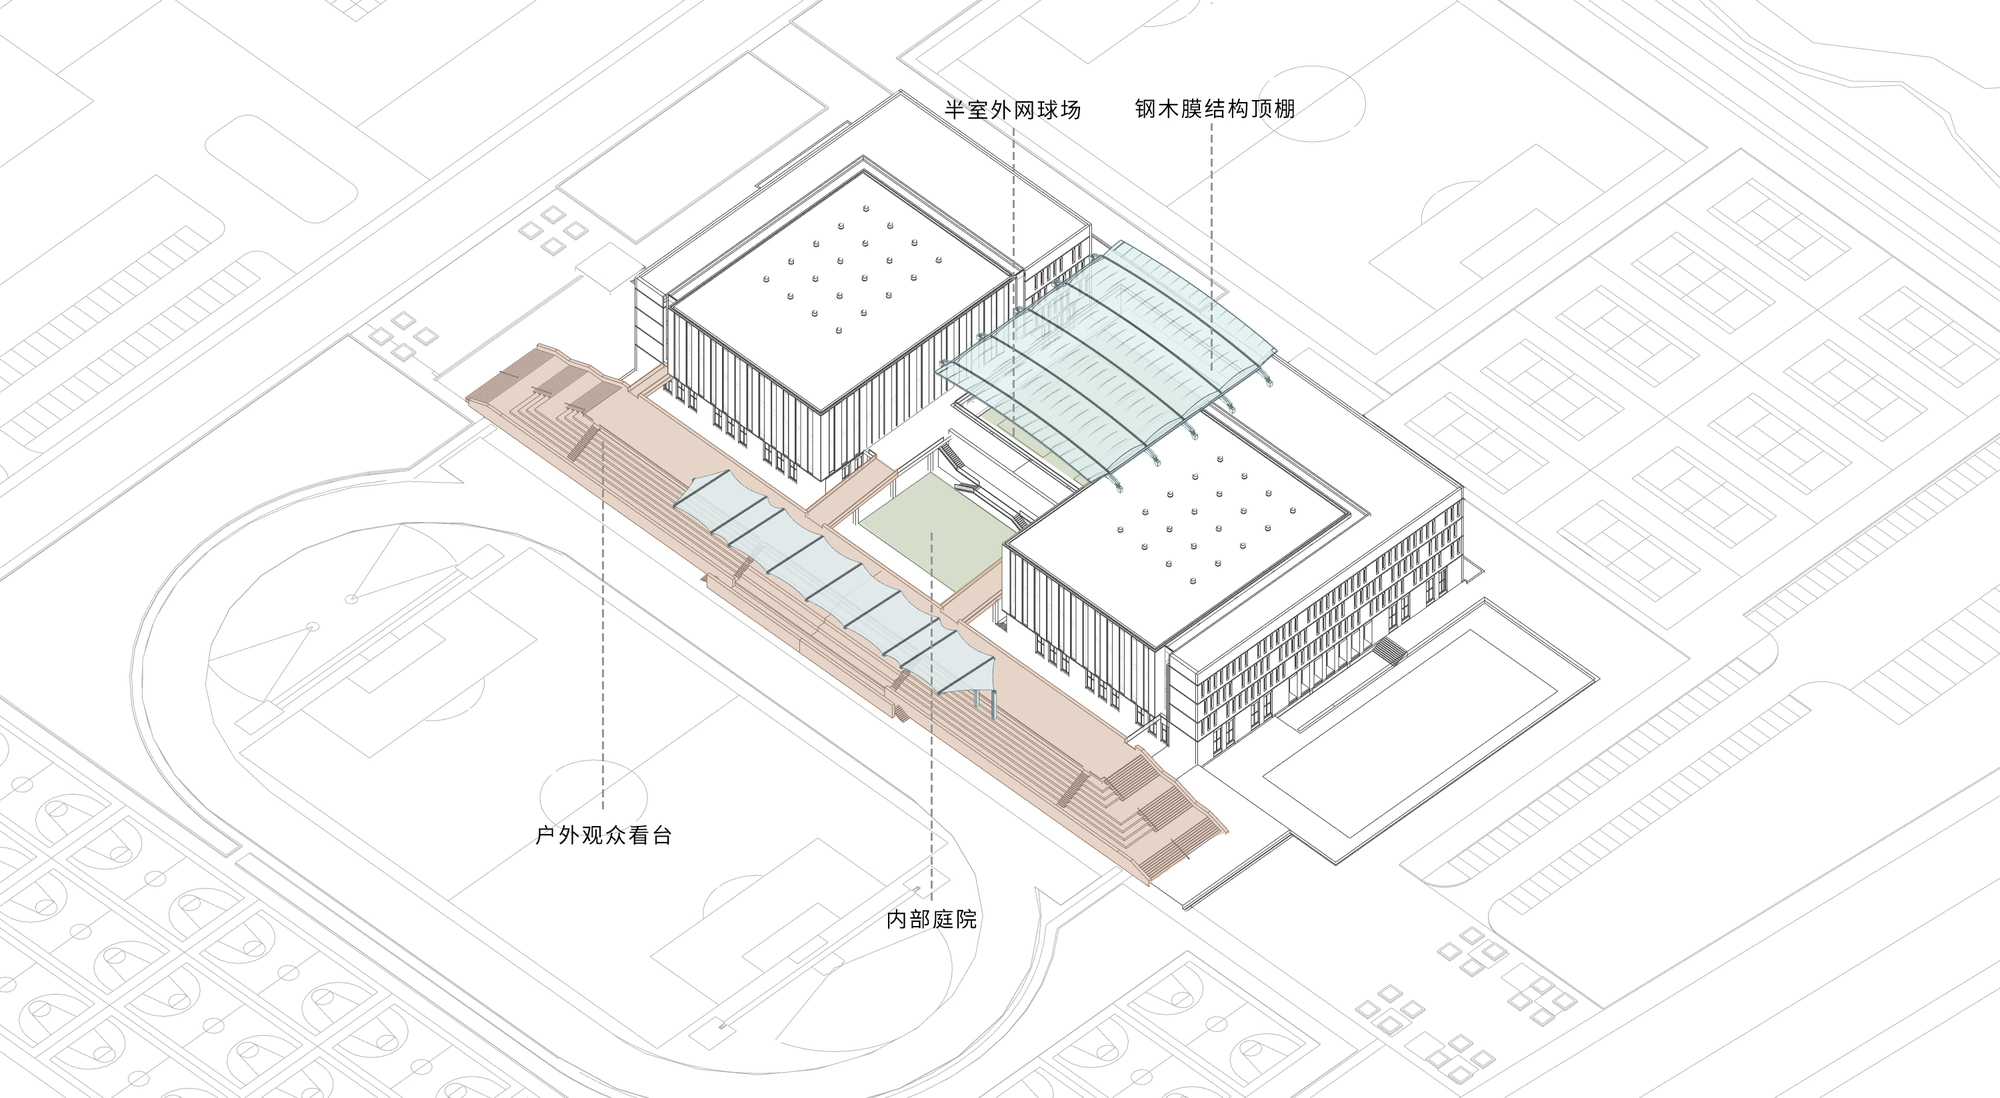 8_Drawing003_Functional_analysis_of_the_Comprehensive_Gymnasium.jpg